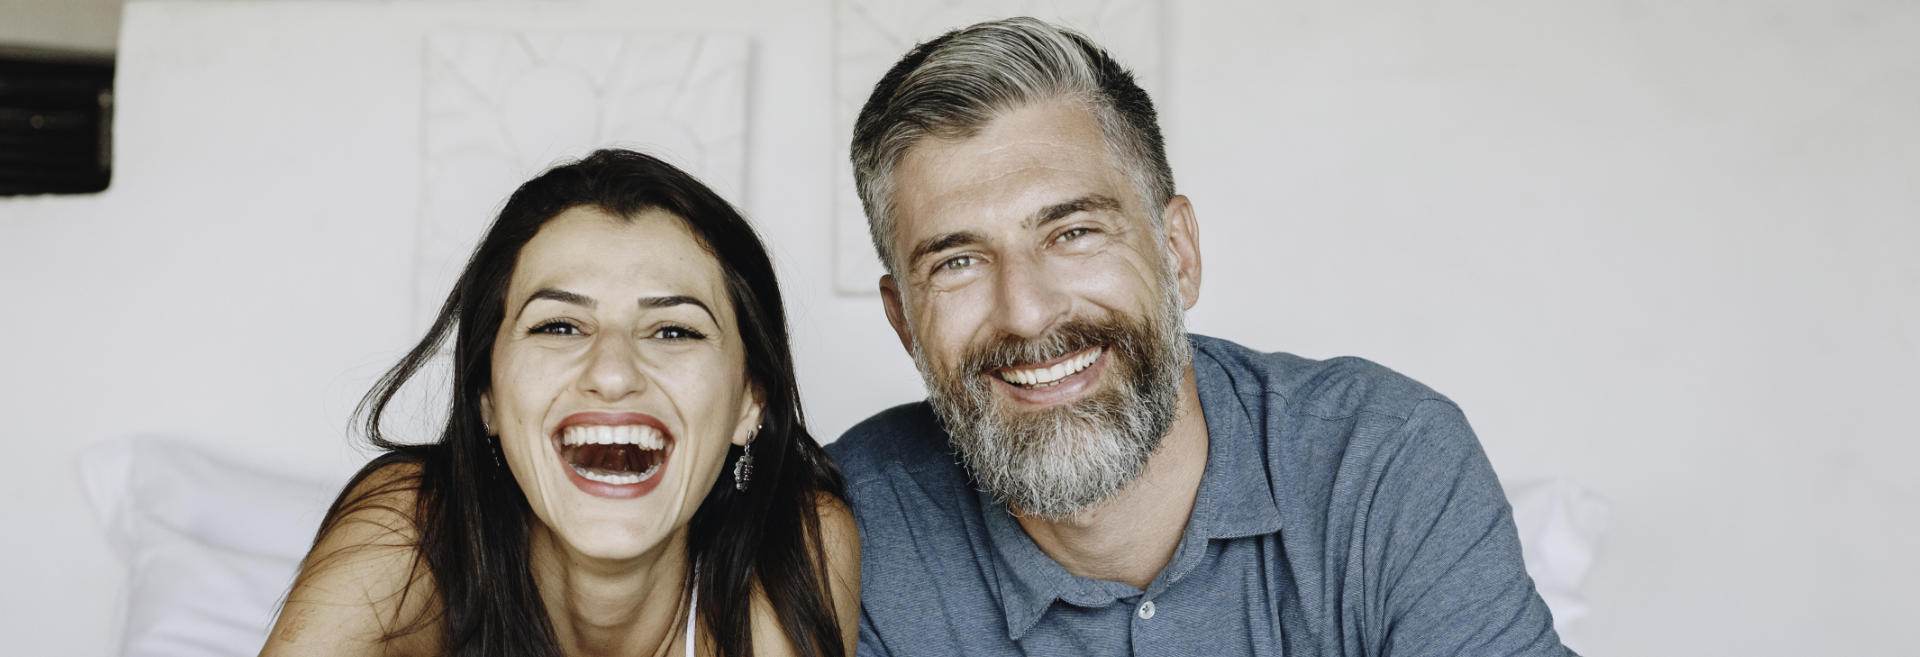 happily smiling middle-aged couple showing perfect teeth in their smiles